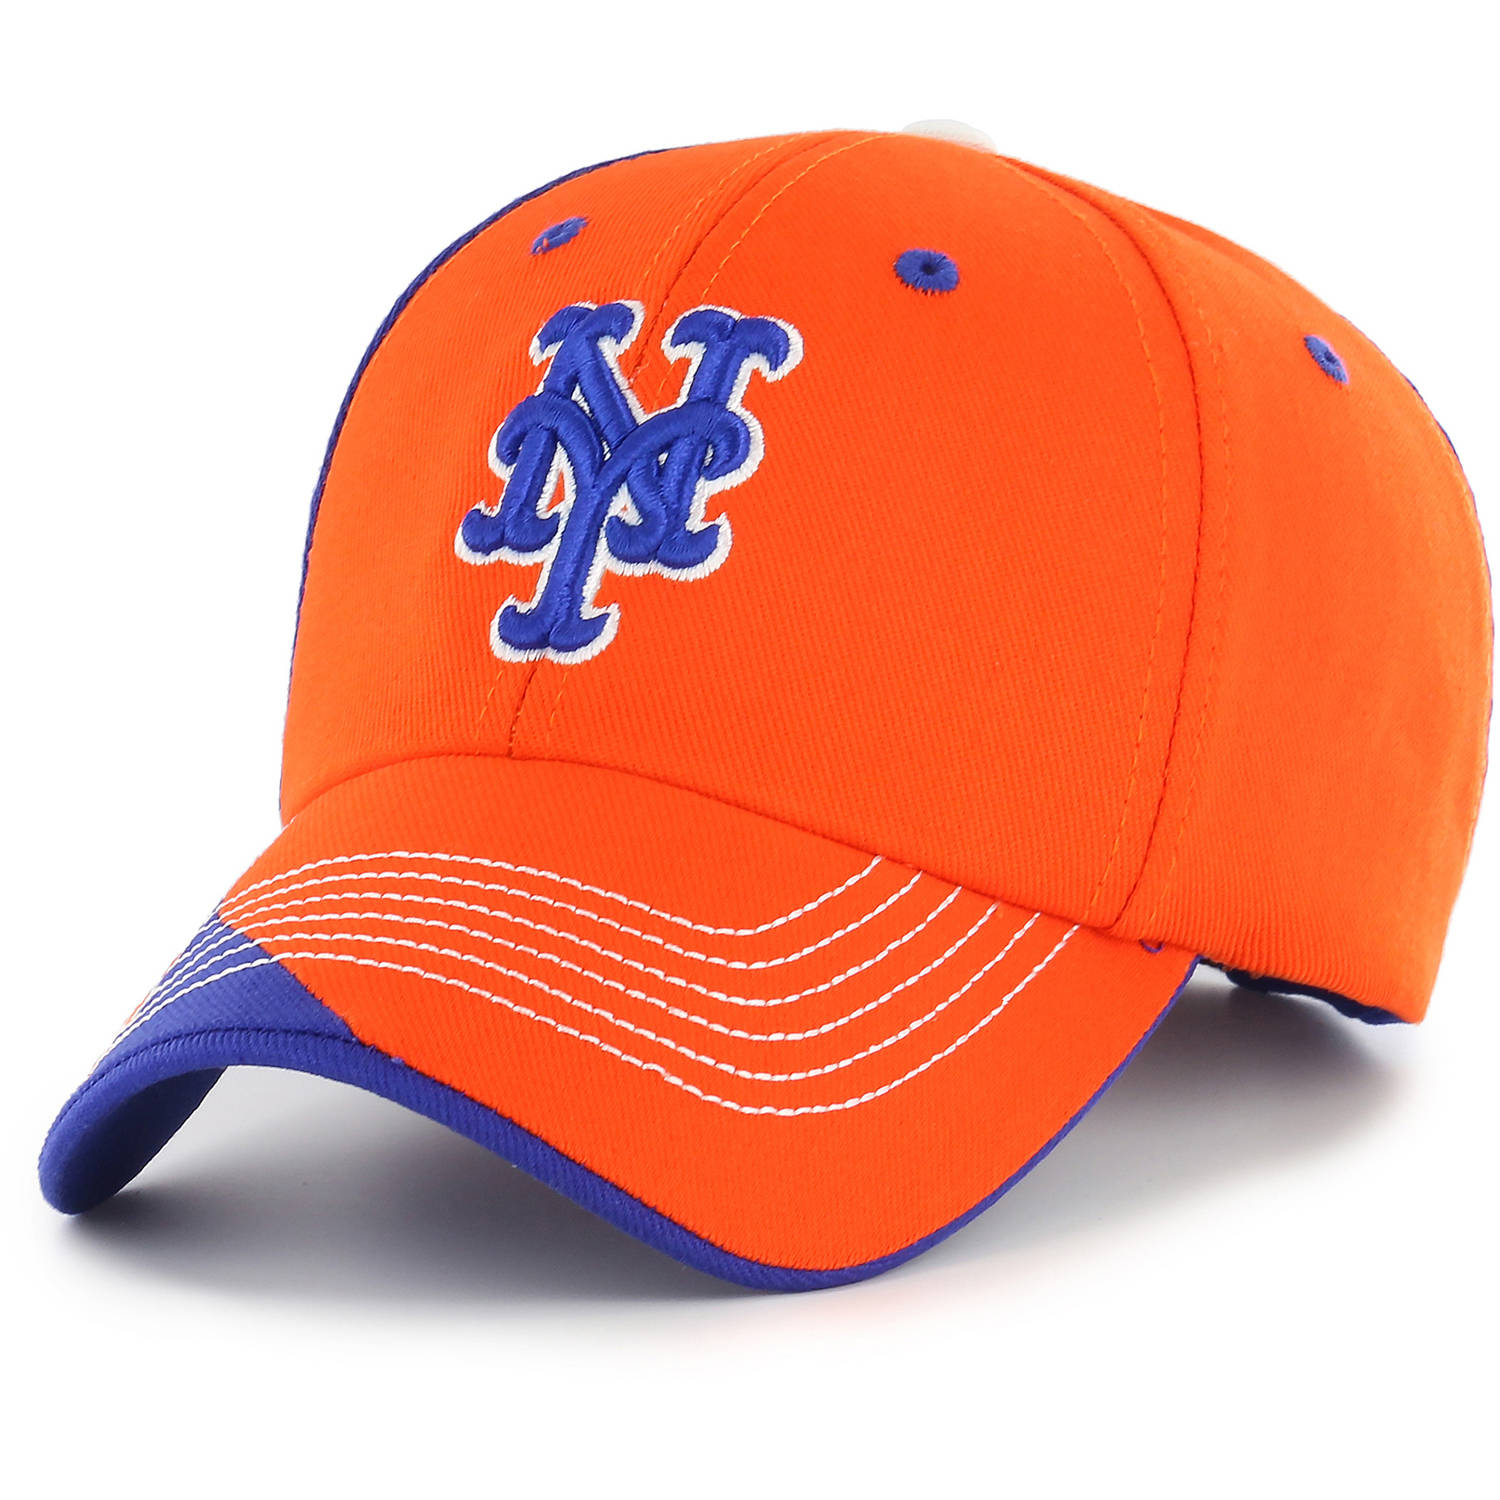 MLB New York Mets Hubris Cap / Hat by Fan Favorite